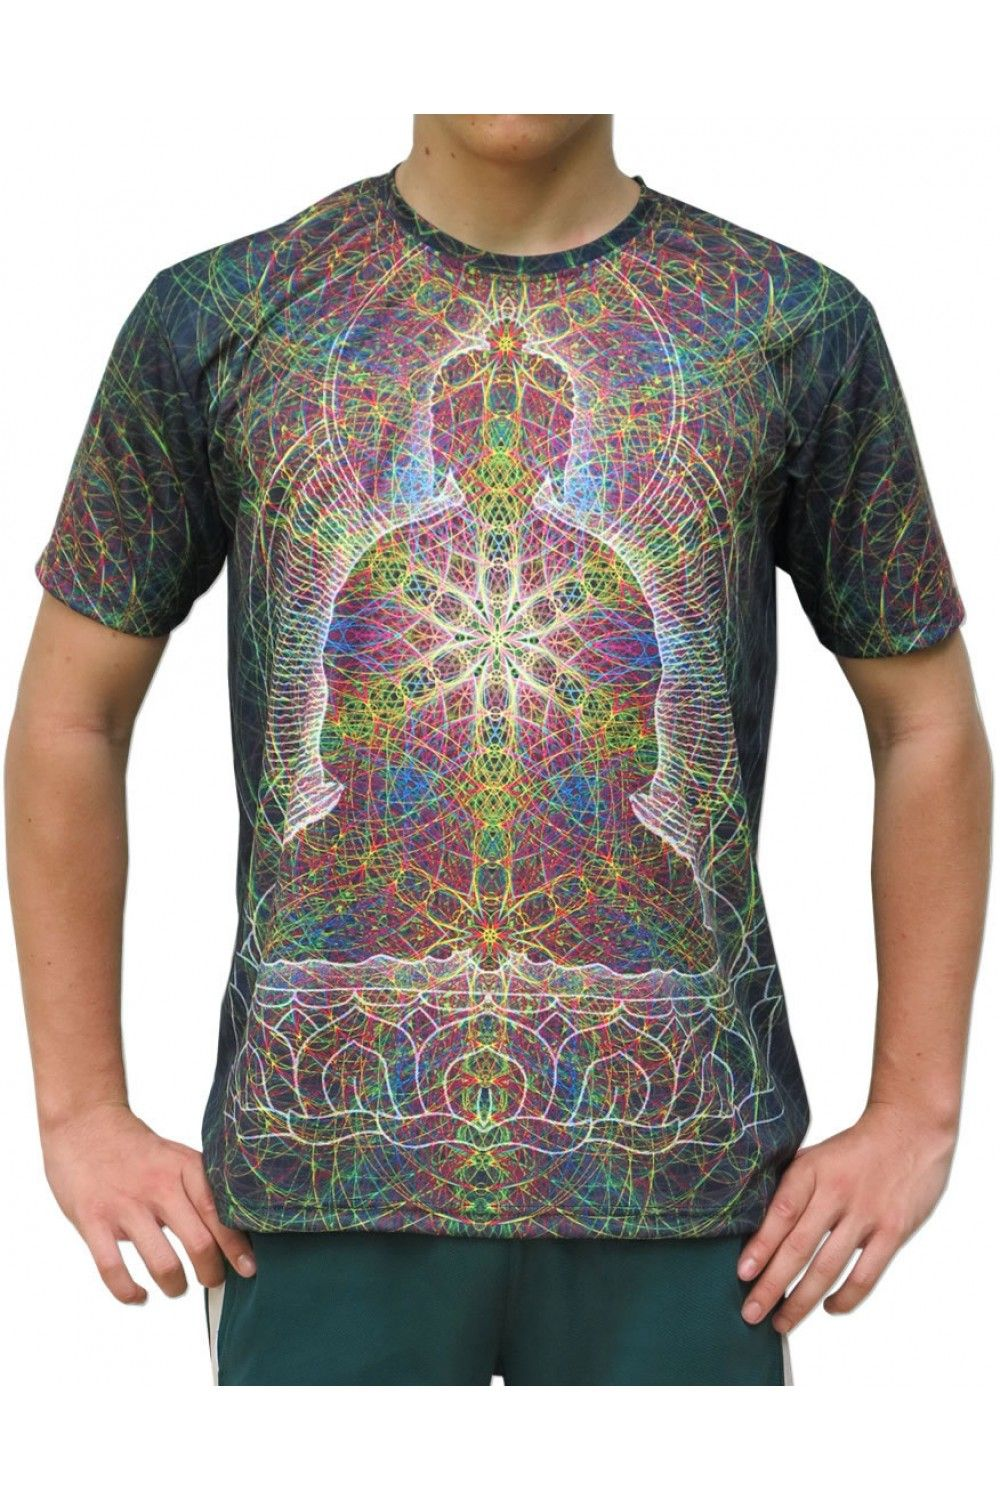 "Sublime S/S T : Rainbow Buddha Fully printed short sleeve T shirt. This shirt is an ""All Over"" printed T shirt that will really grab people's attention. The design is printed using sublimation printing on a high quality polyester / Dri-Fit blended shirt. This allows for extremely vibrant colors that will never fade away no matter how many times it gets washed, & results in an extremely soft ""feel"" to the shirt, providing ultimate comfort. Artwork by Luke Brown"